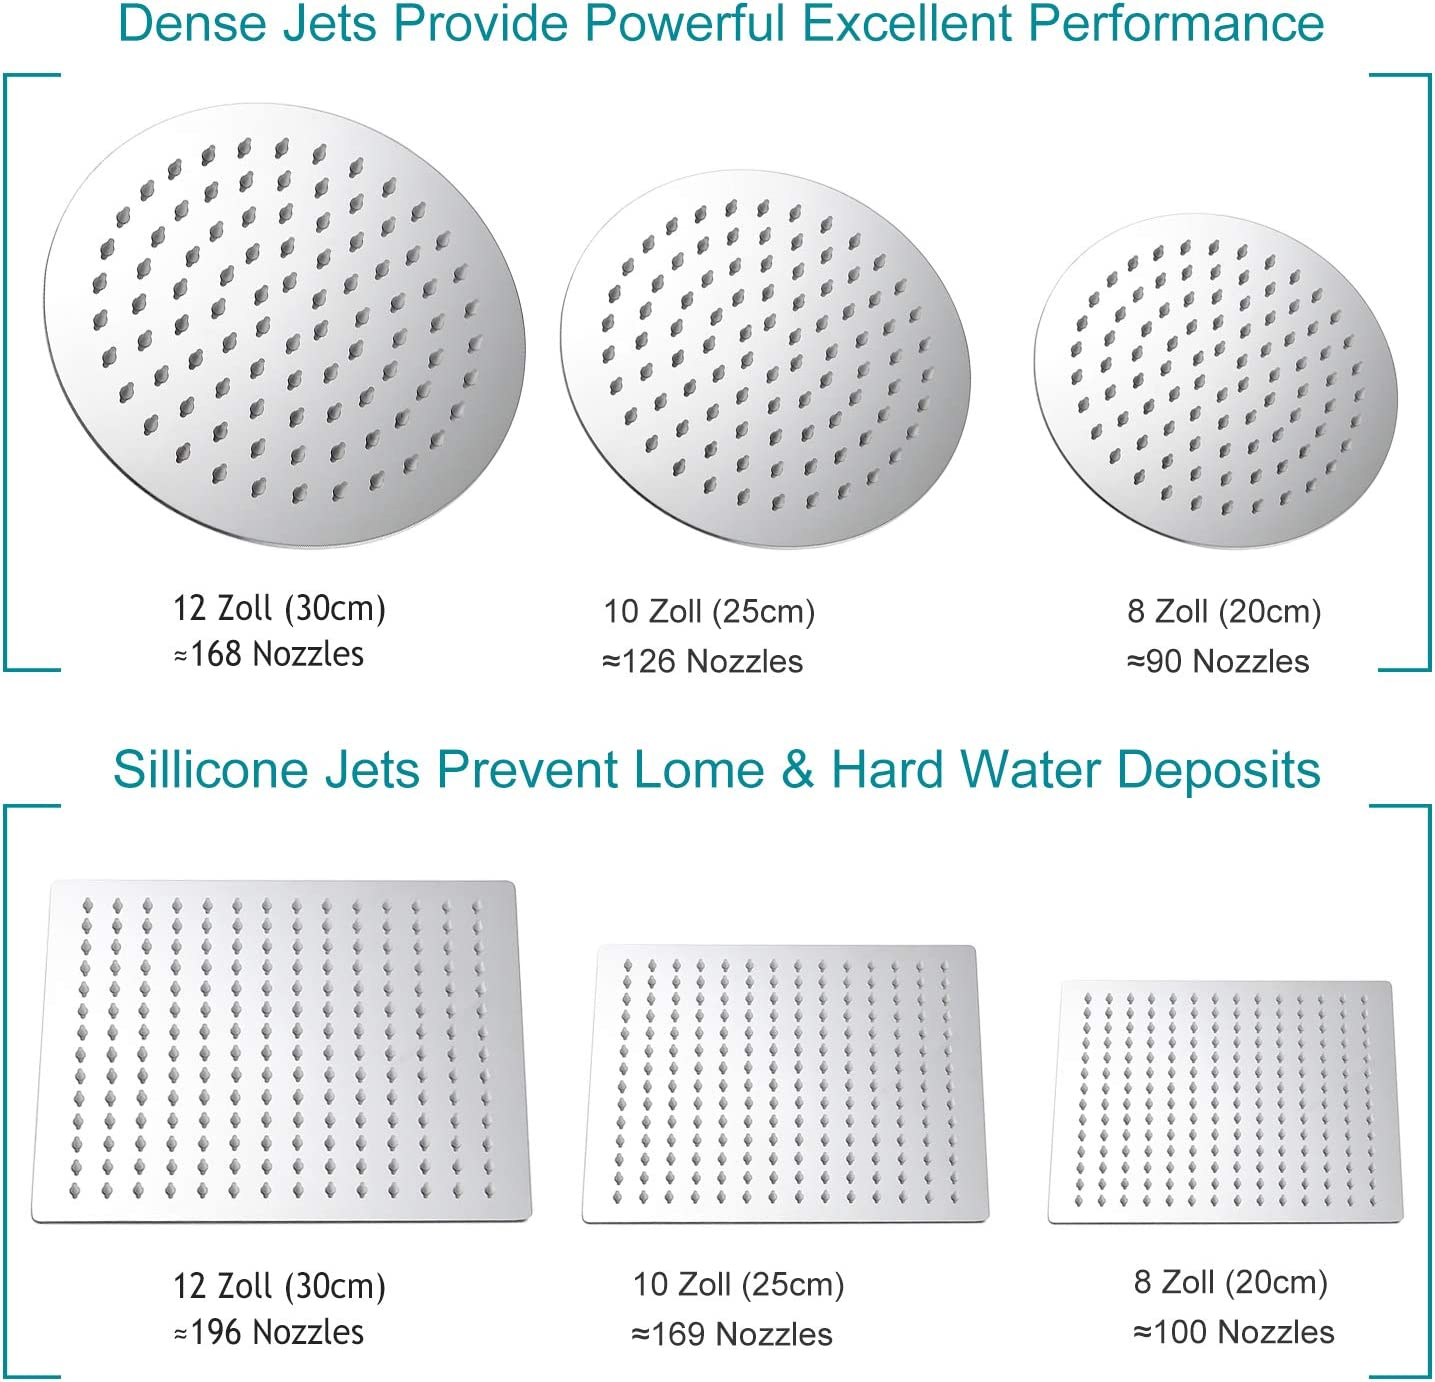 HG Power Rain Shower Head 12 Inch Stainless Steel Rain Shower Head Square 360 Rotation Built-in Shower Head with Silicone Nozzle G1//2 Inner Thread Polished Waterfall Rain Shower Head Wall Mounted